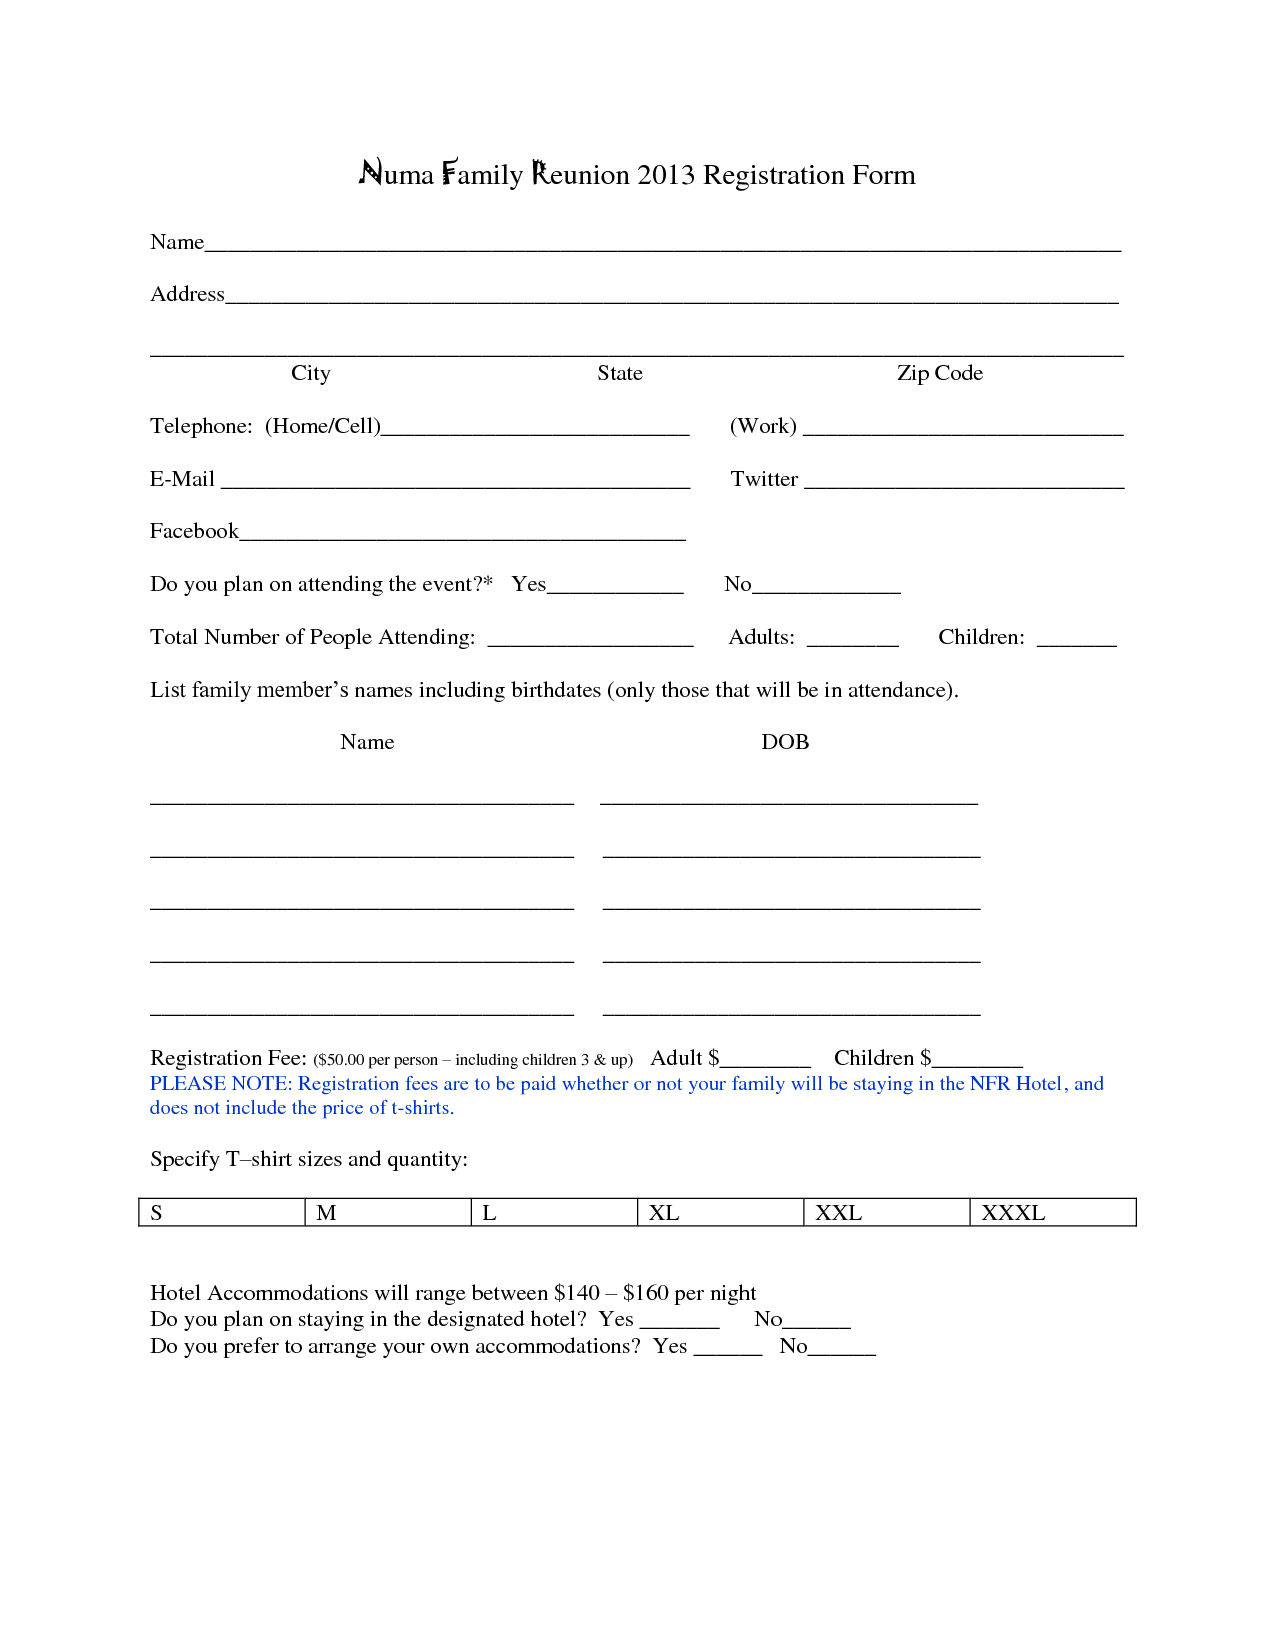 Perfect Family Reunion Registration Form Template Regarding Paper Registration Form Template